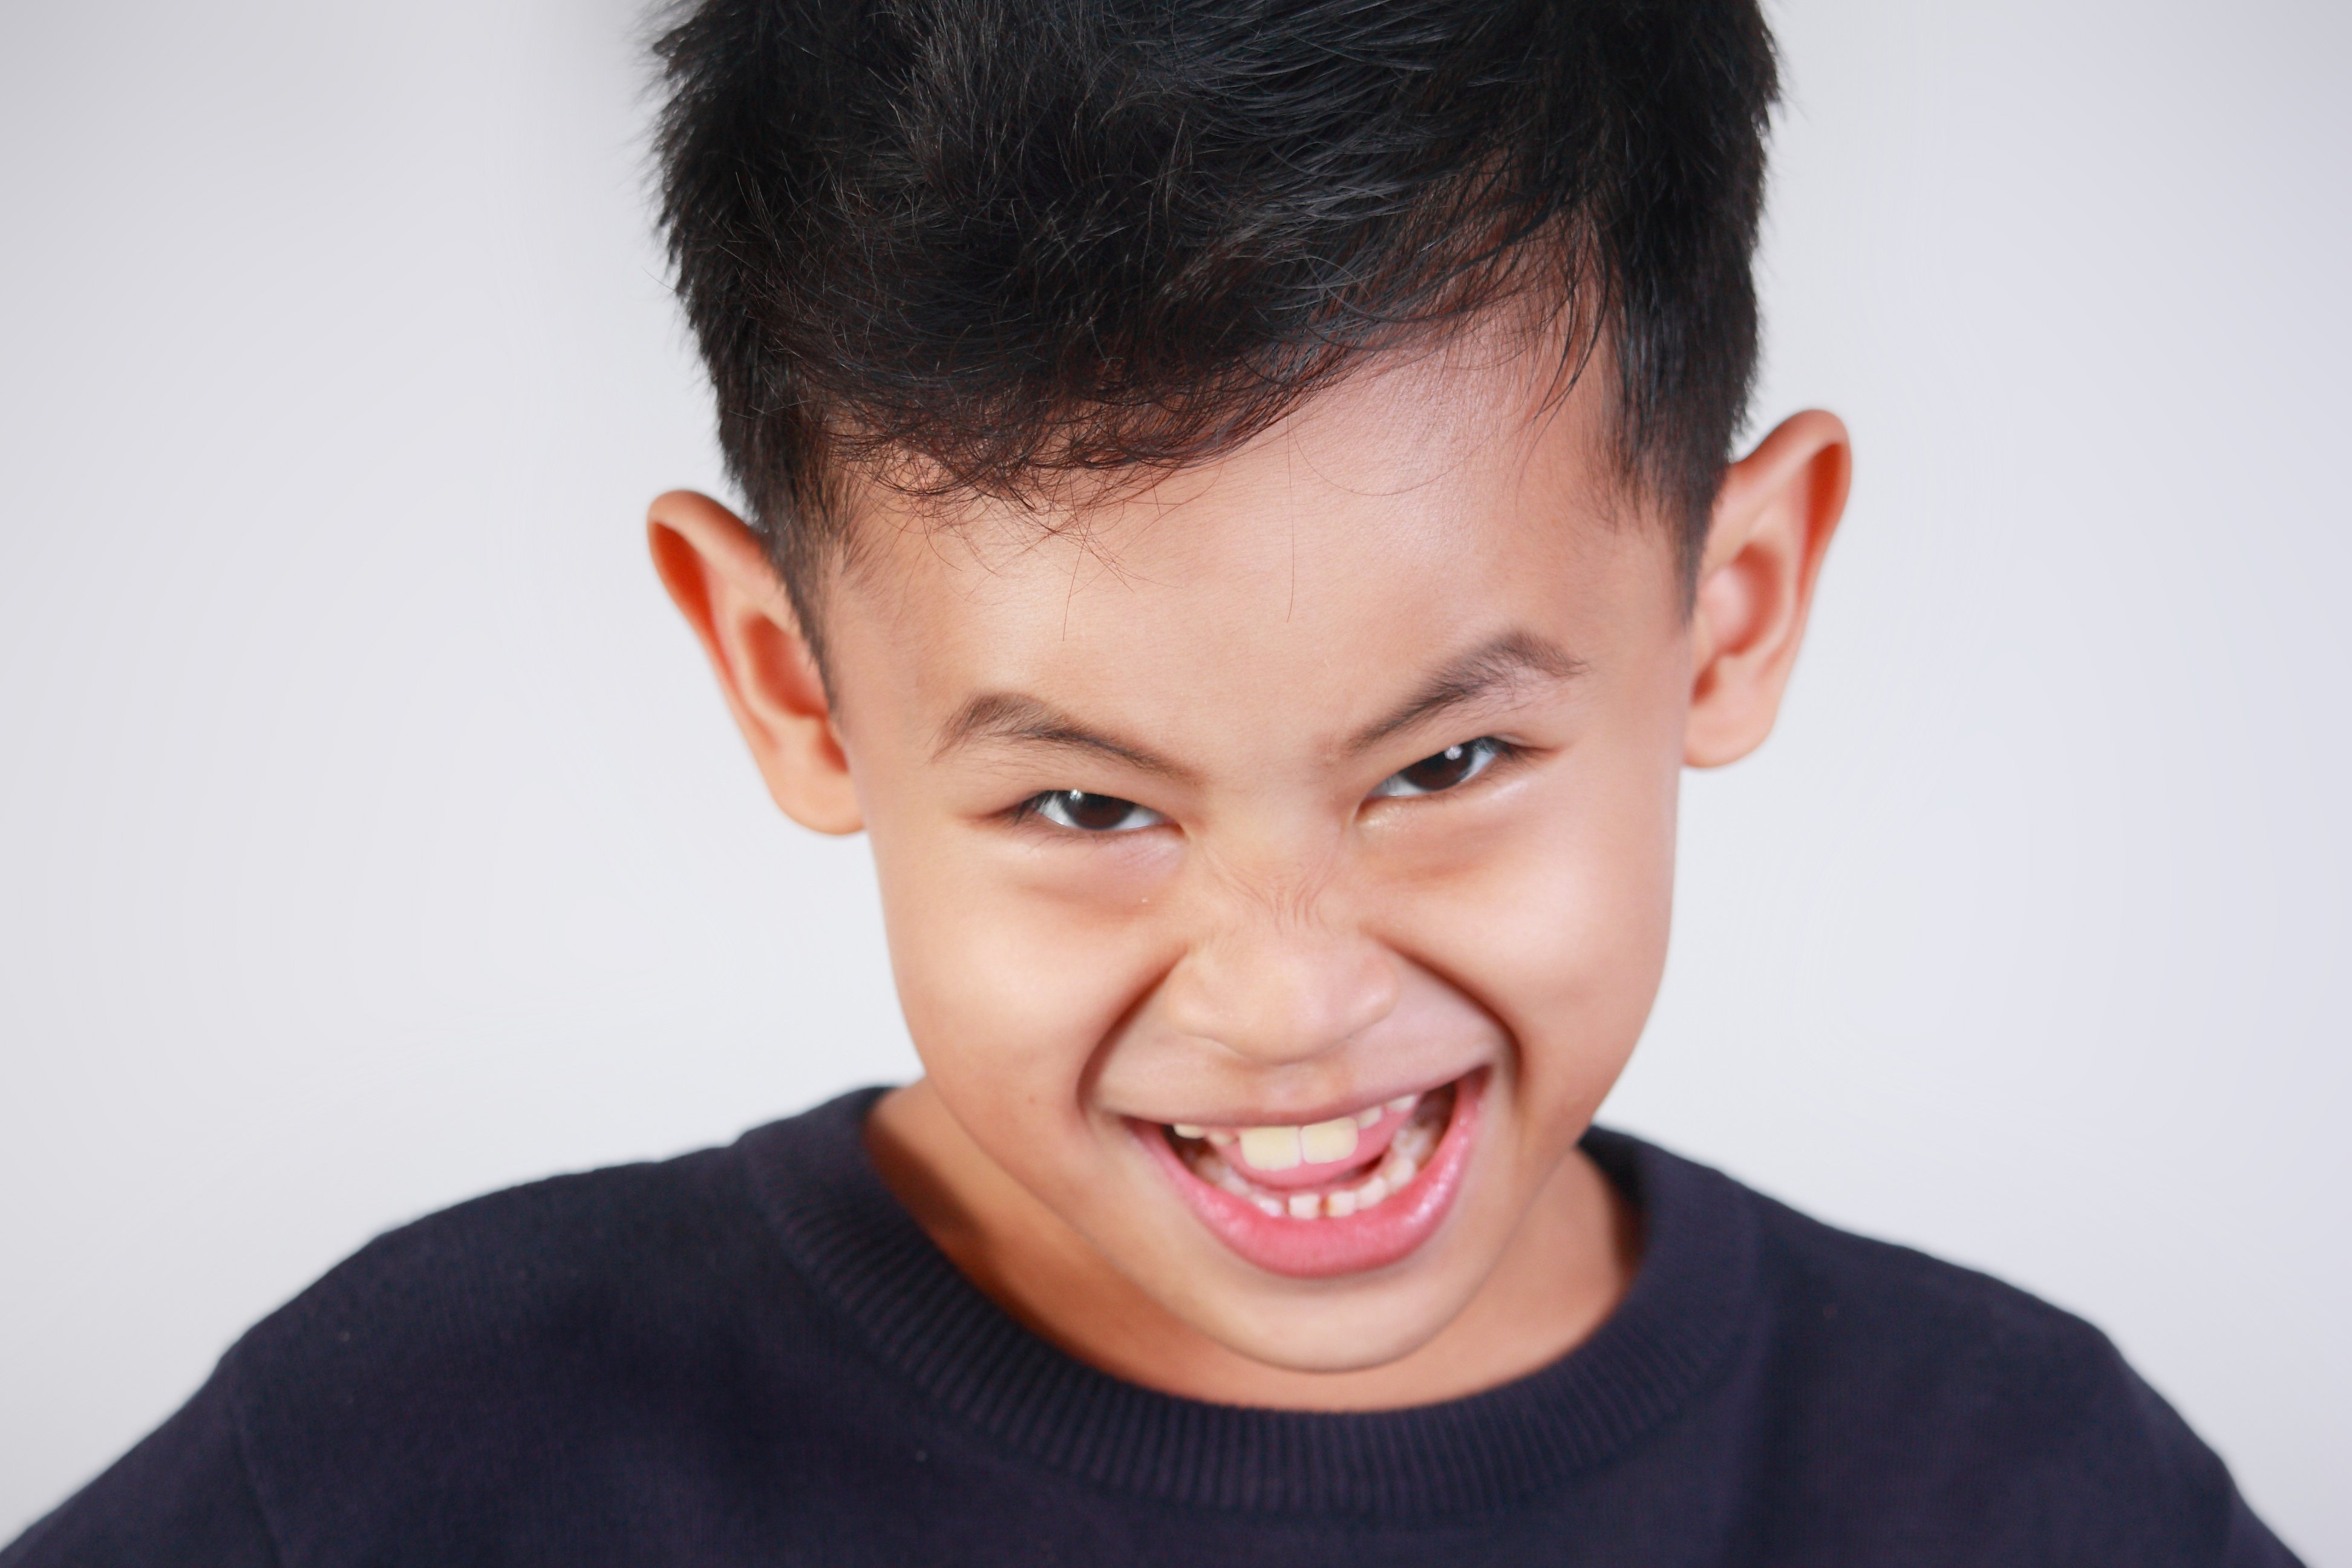 Dark haired boy with naughty facial expression. | Source: Shutterstock